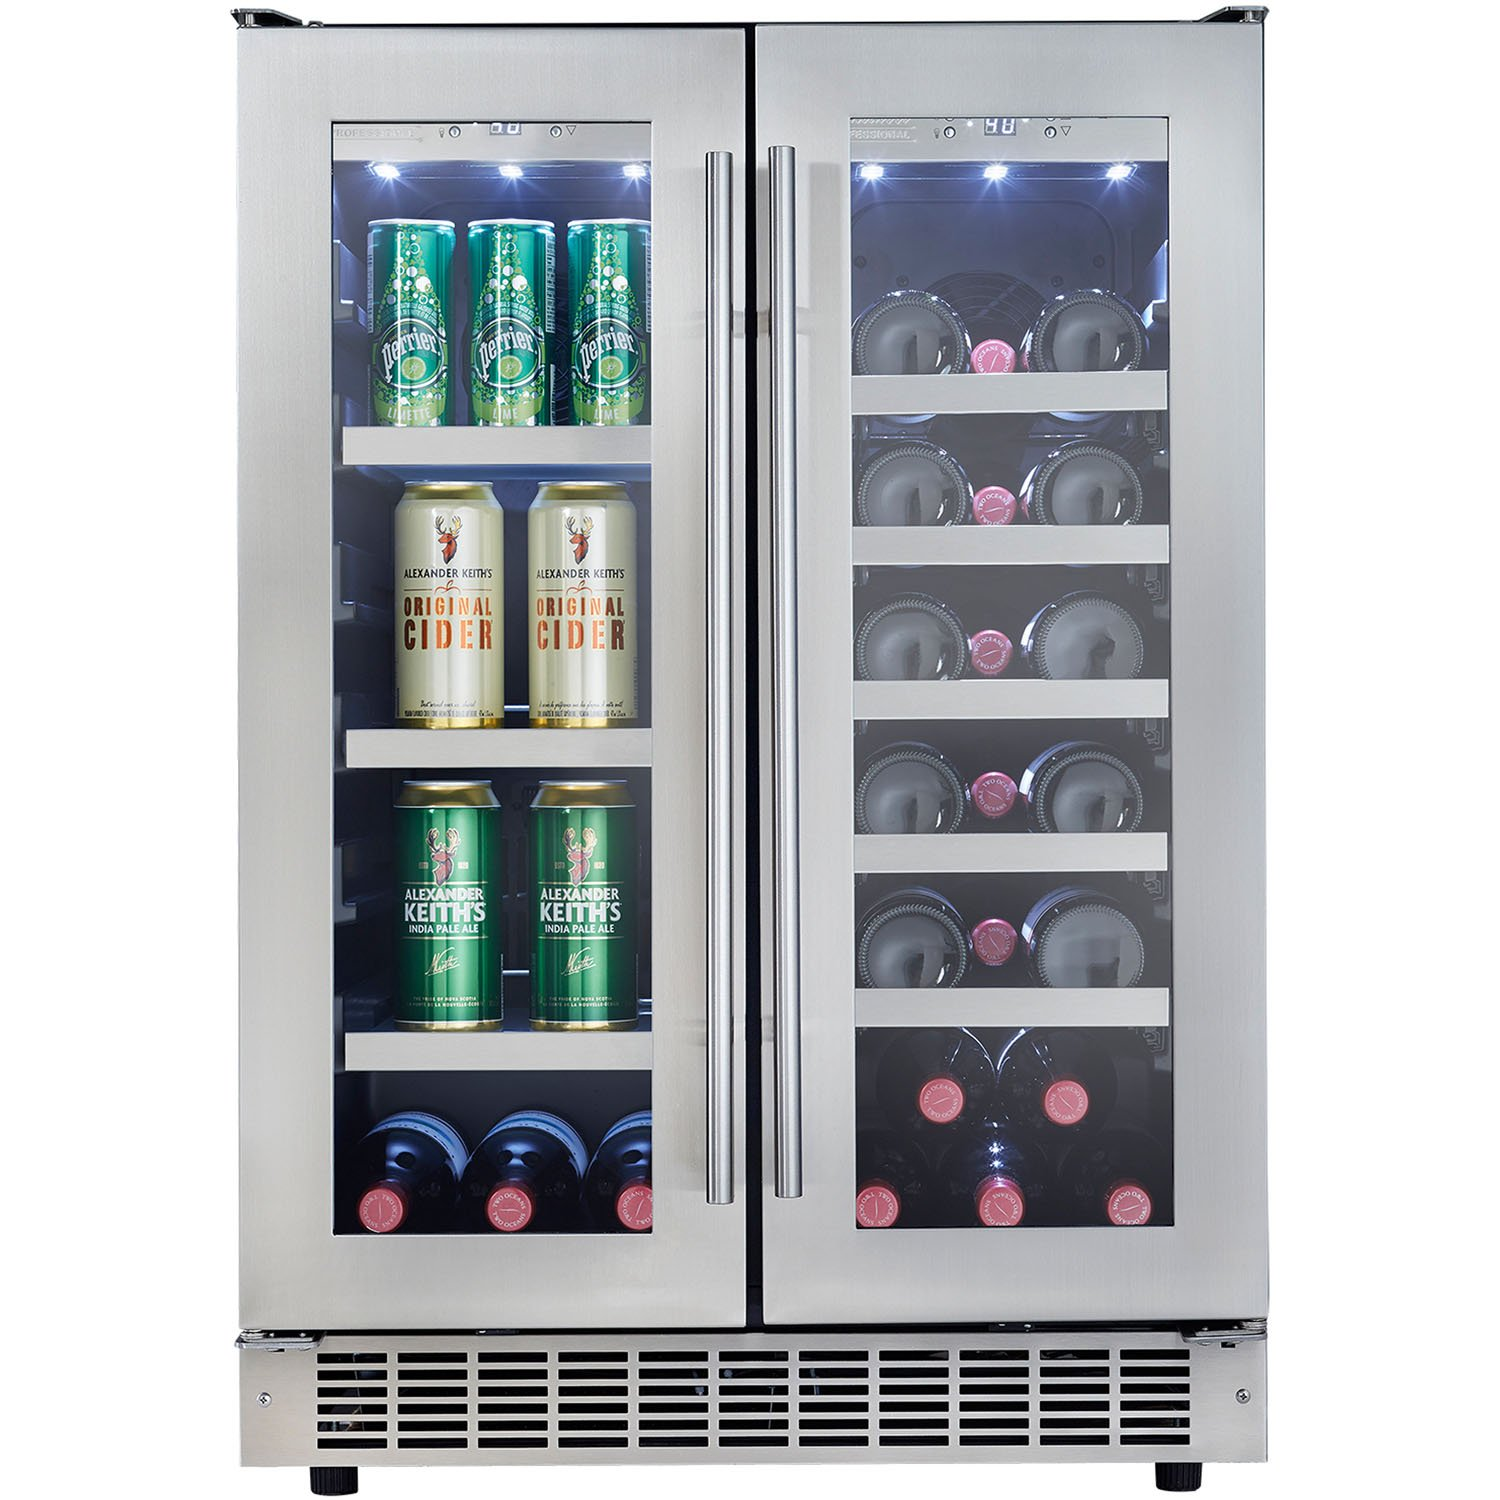 thermoelectric home for freestanding appliances standing top buy best selling fridges countertops bottles countertop it bottle here coolers firebird counter refrigerator fresstanding free wine cellars cooler fridge